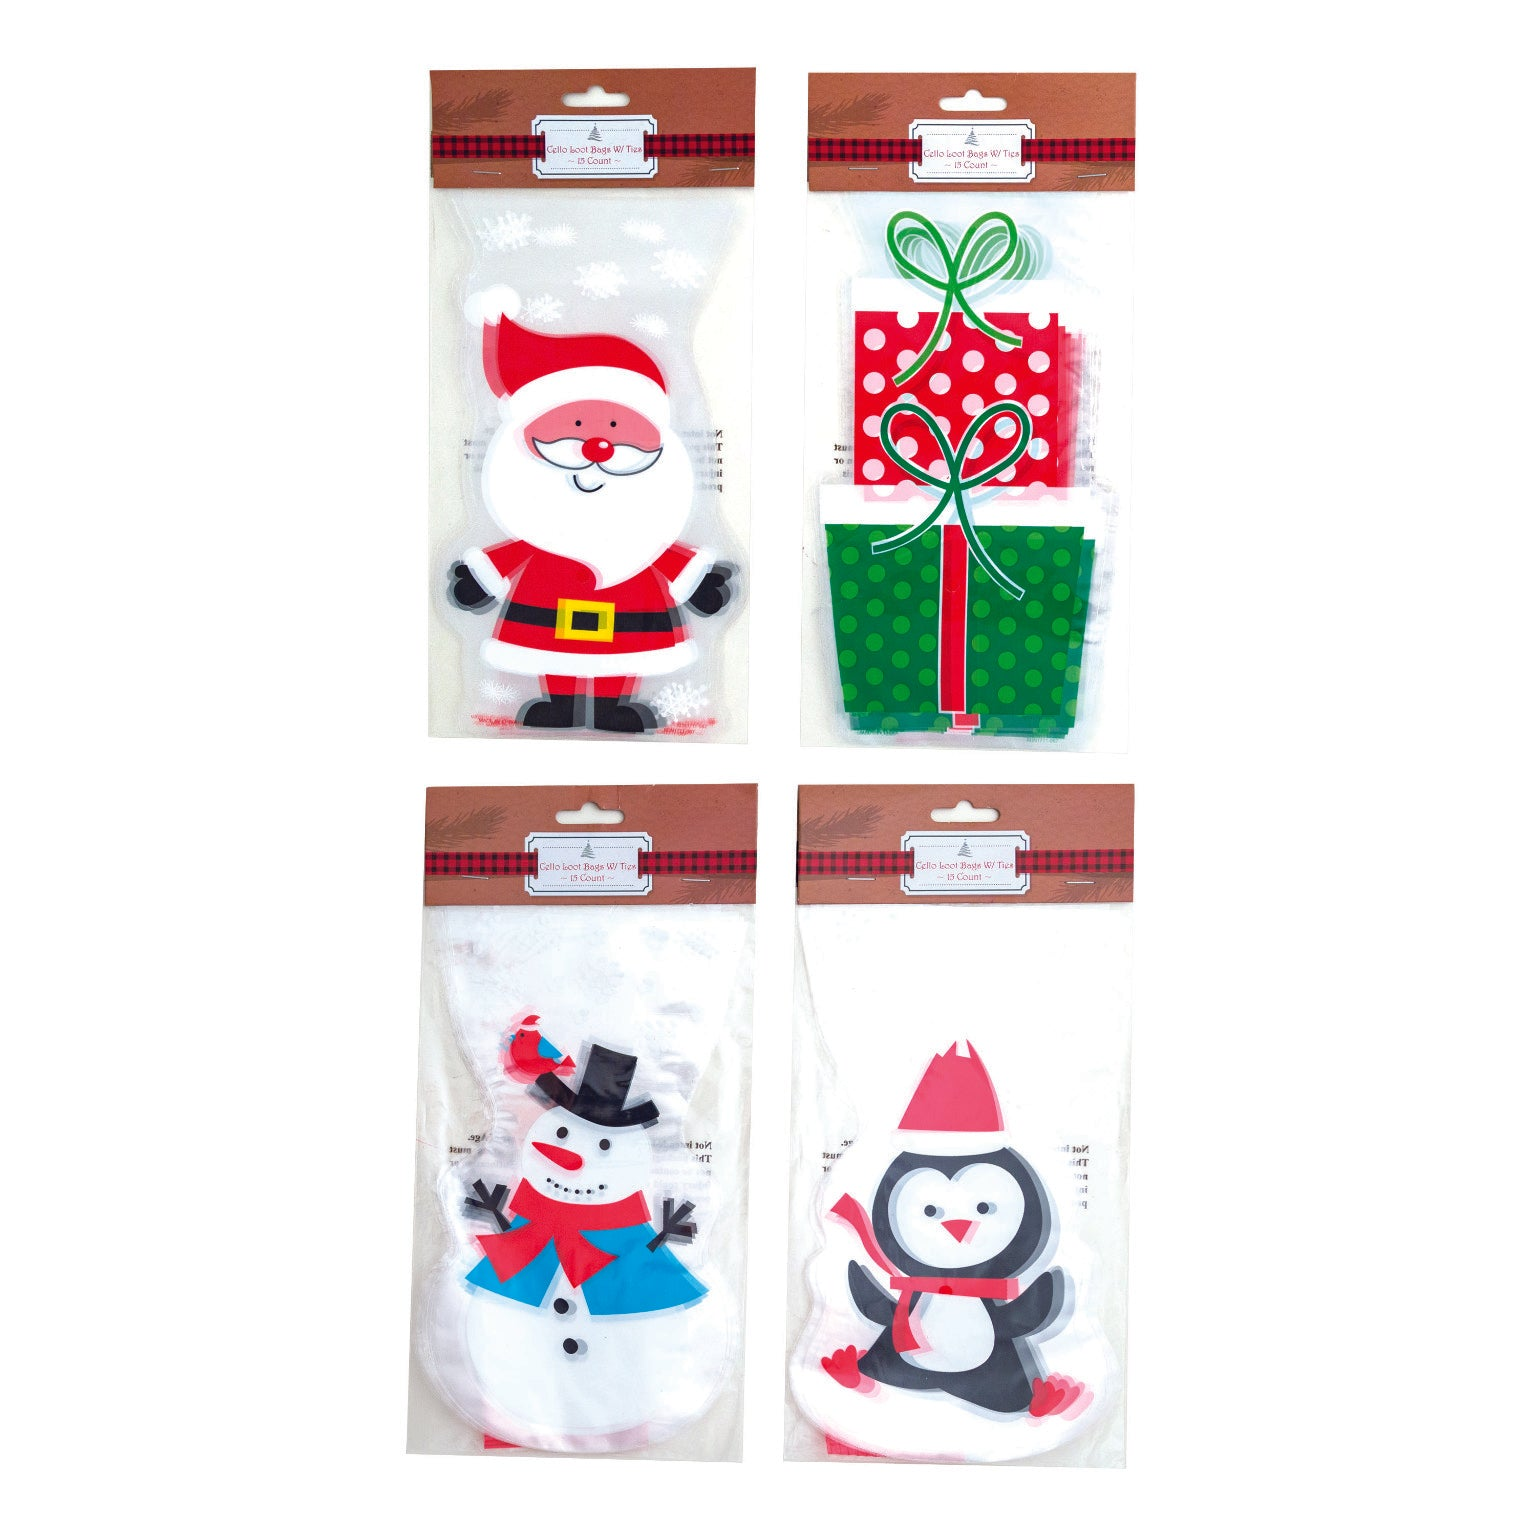 15 Count Christmas Loot Bags - Assorted Prints - CASE OF 96